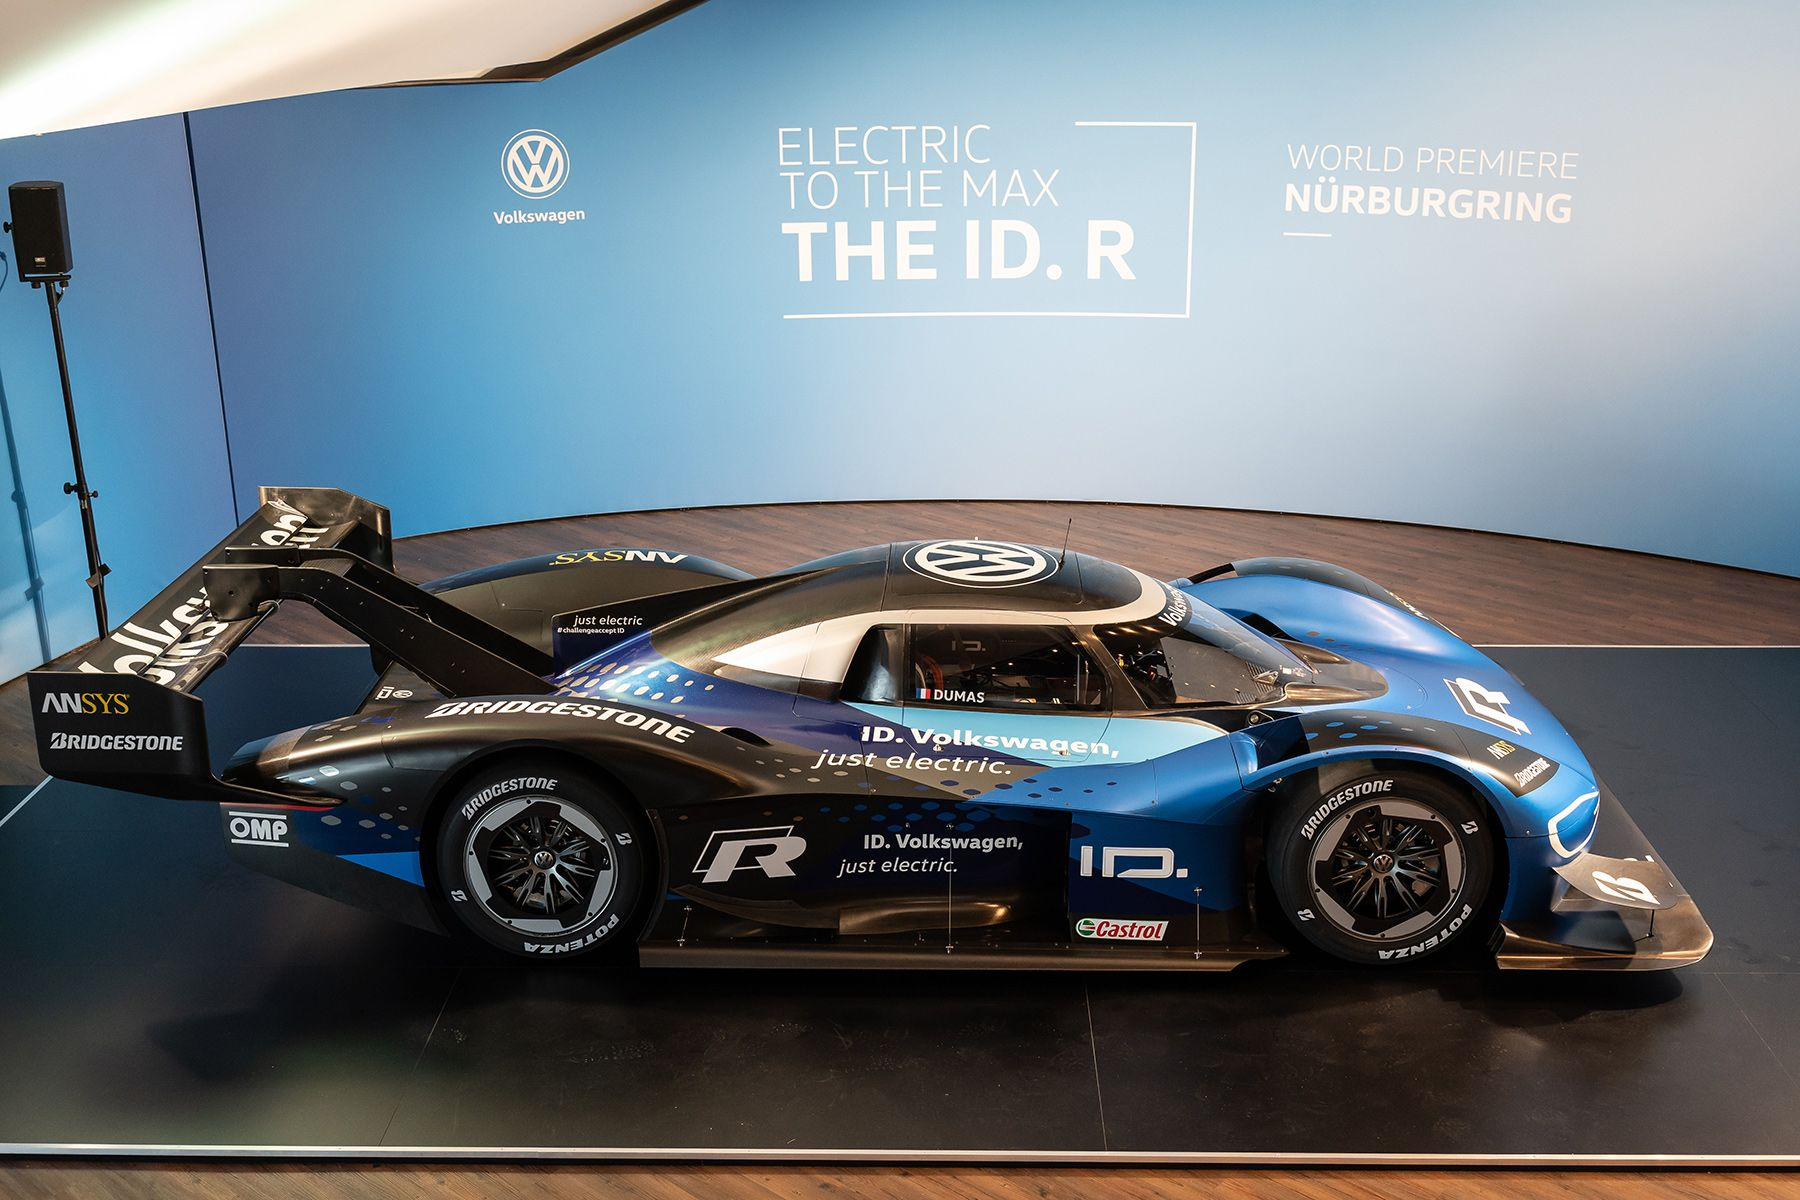 Volkswagen Tests Id R All Electric Race Car At Nurburgring With